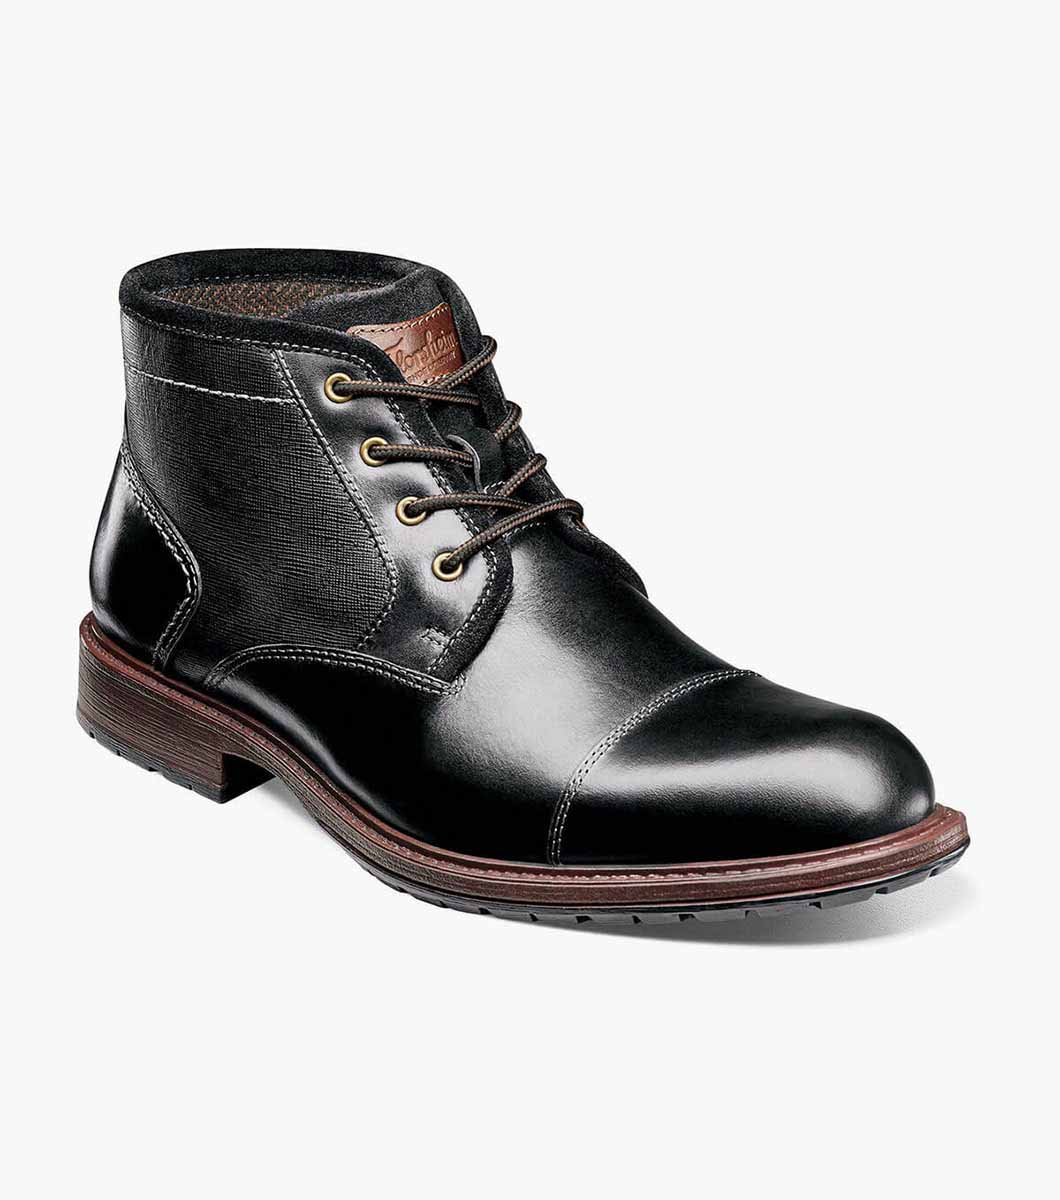 vandal boots clearance